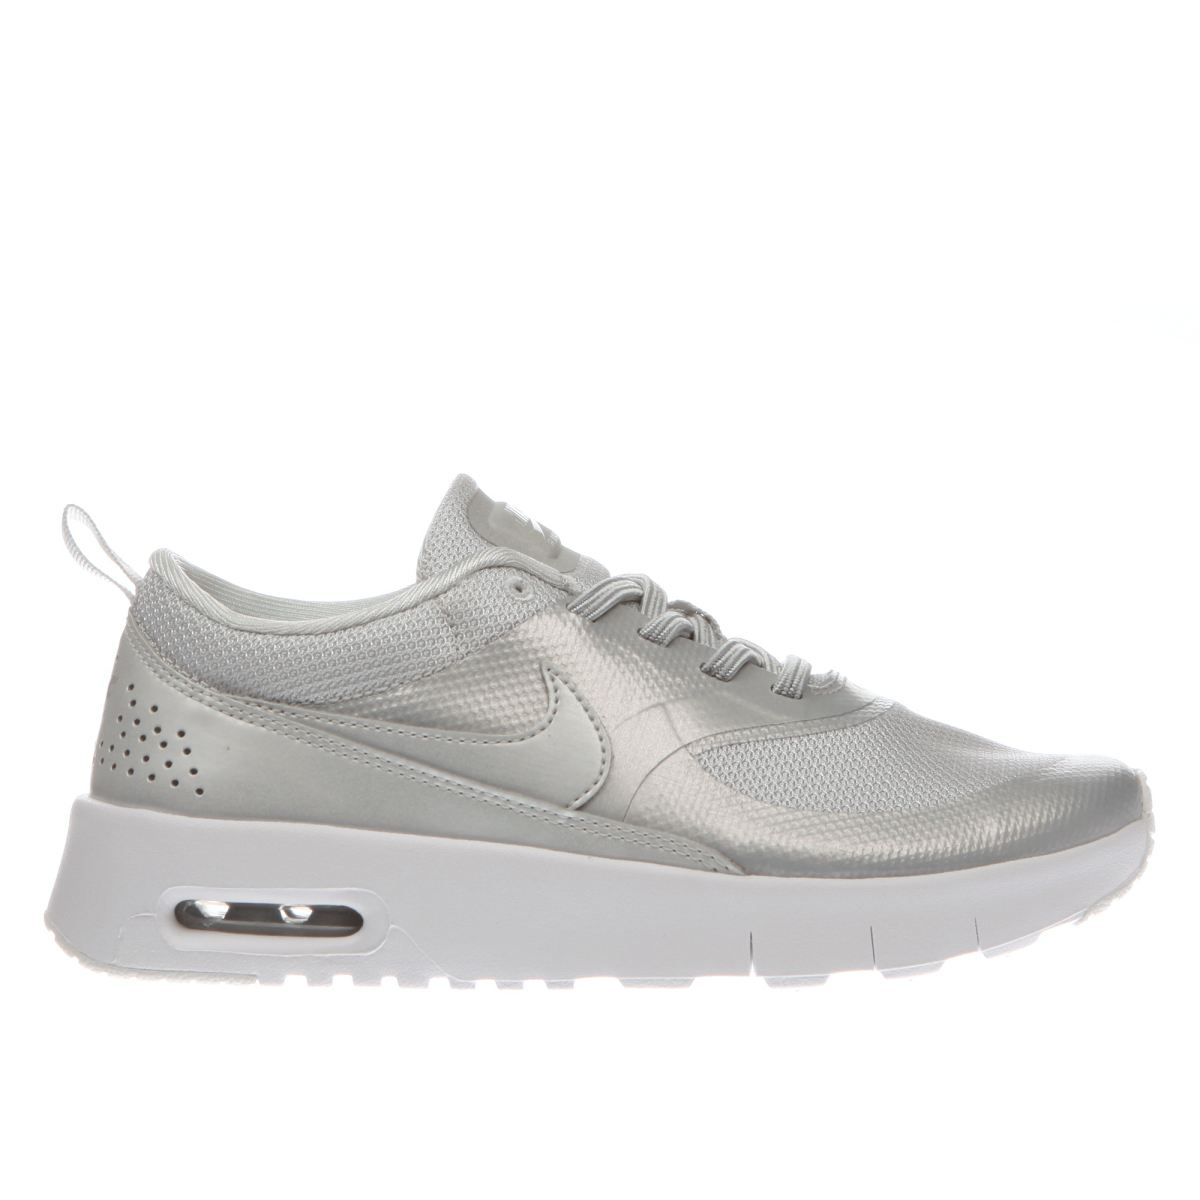 Nike Nike Air Max Thea Trainers In White And Black Asos